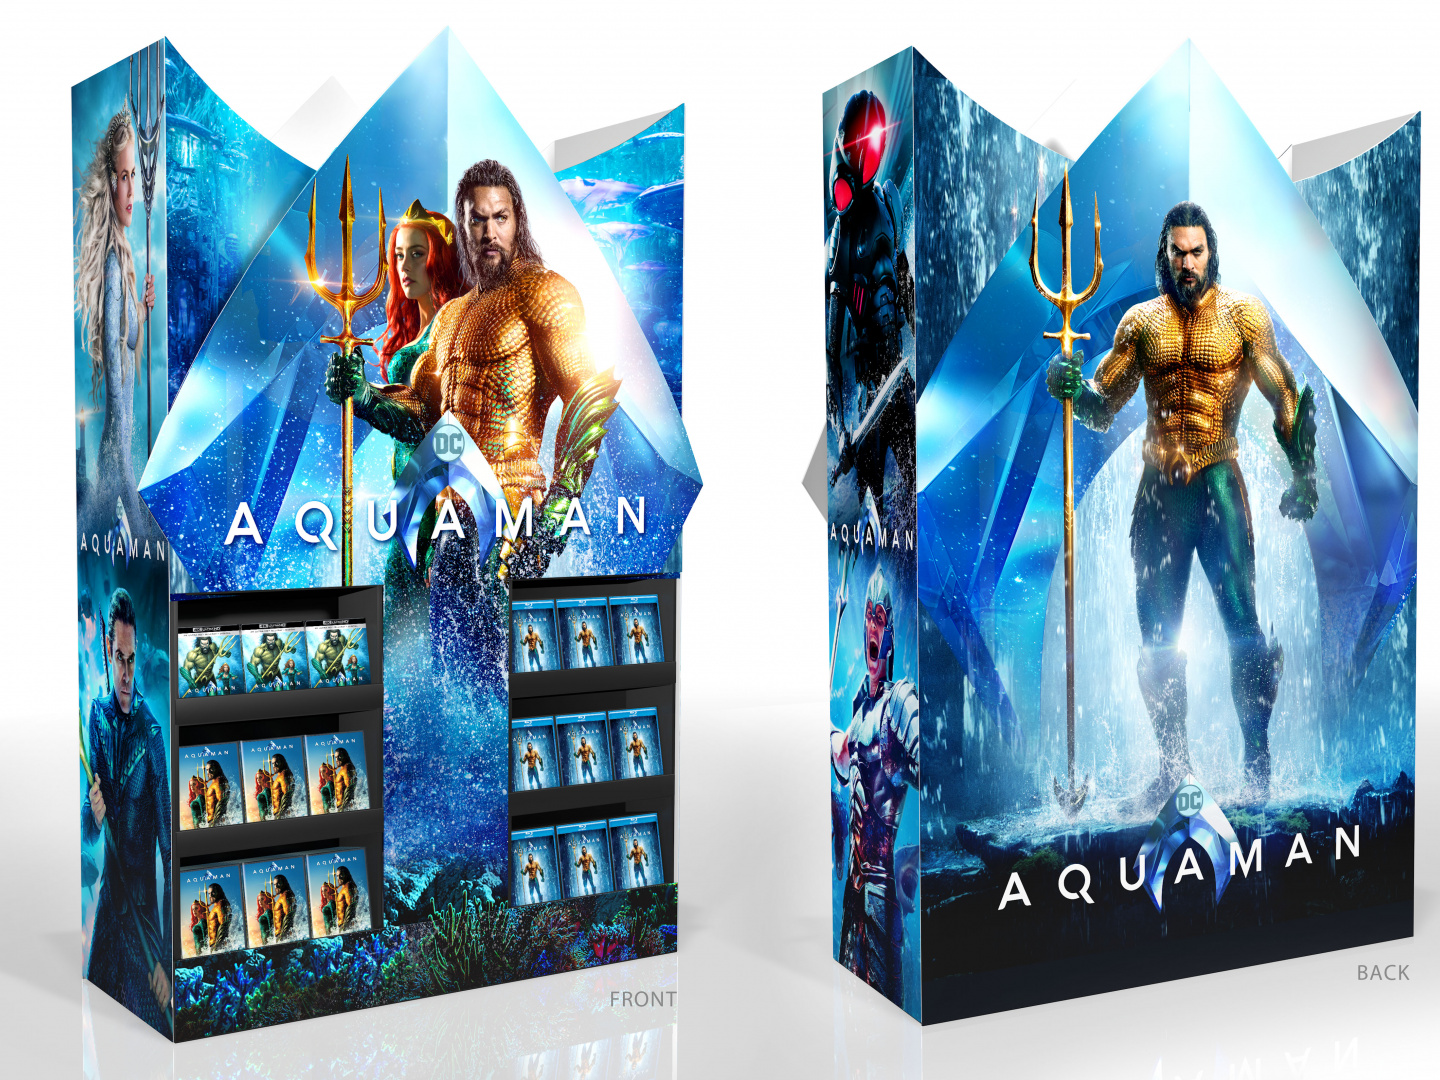 Aquaman Home Entertainment Best Buy Display Mini Wow Cube Thumbnail